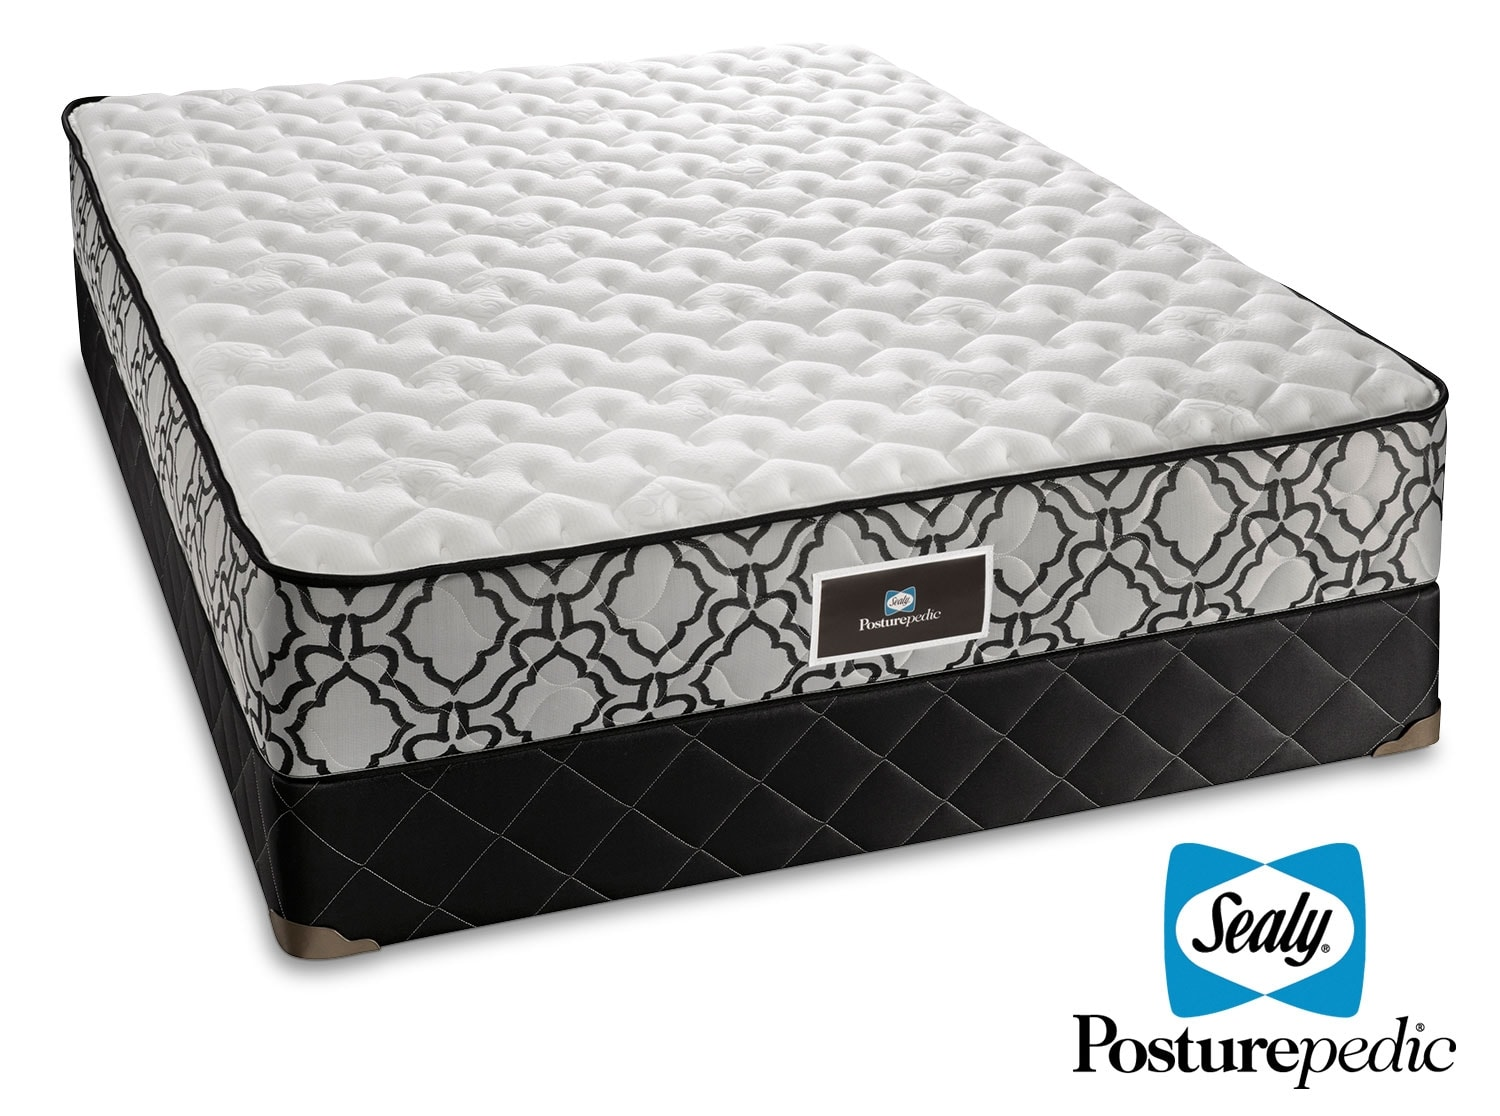 Sealy saga queen mattress boxspring set leon 39 s Queen bed and mattress